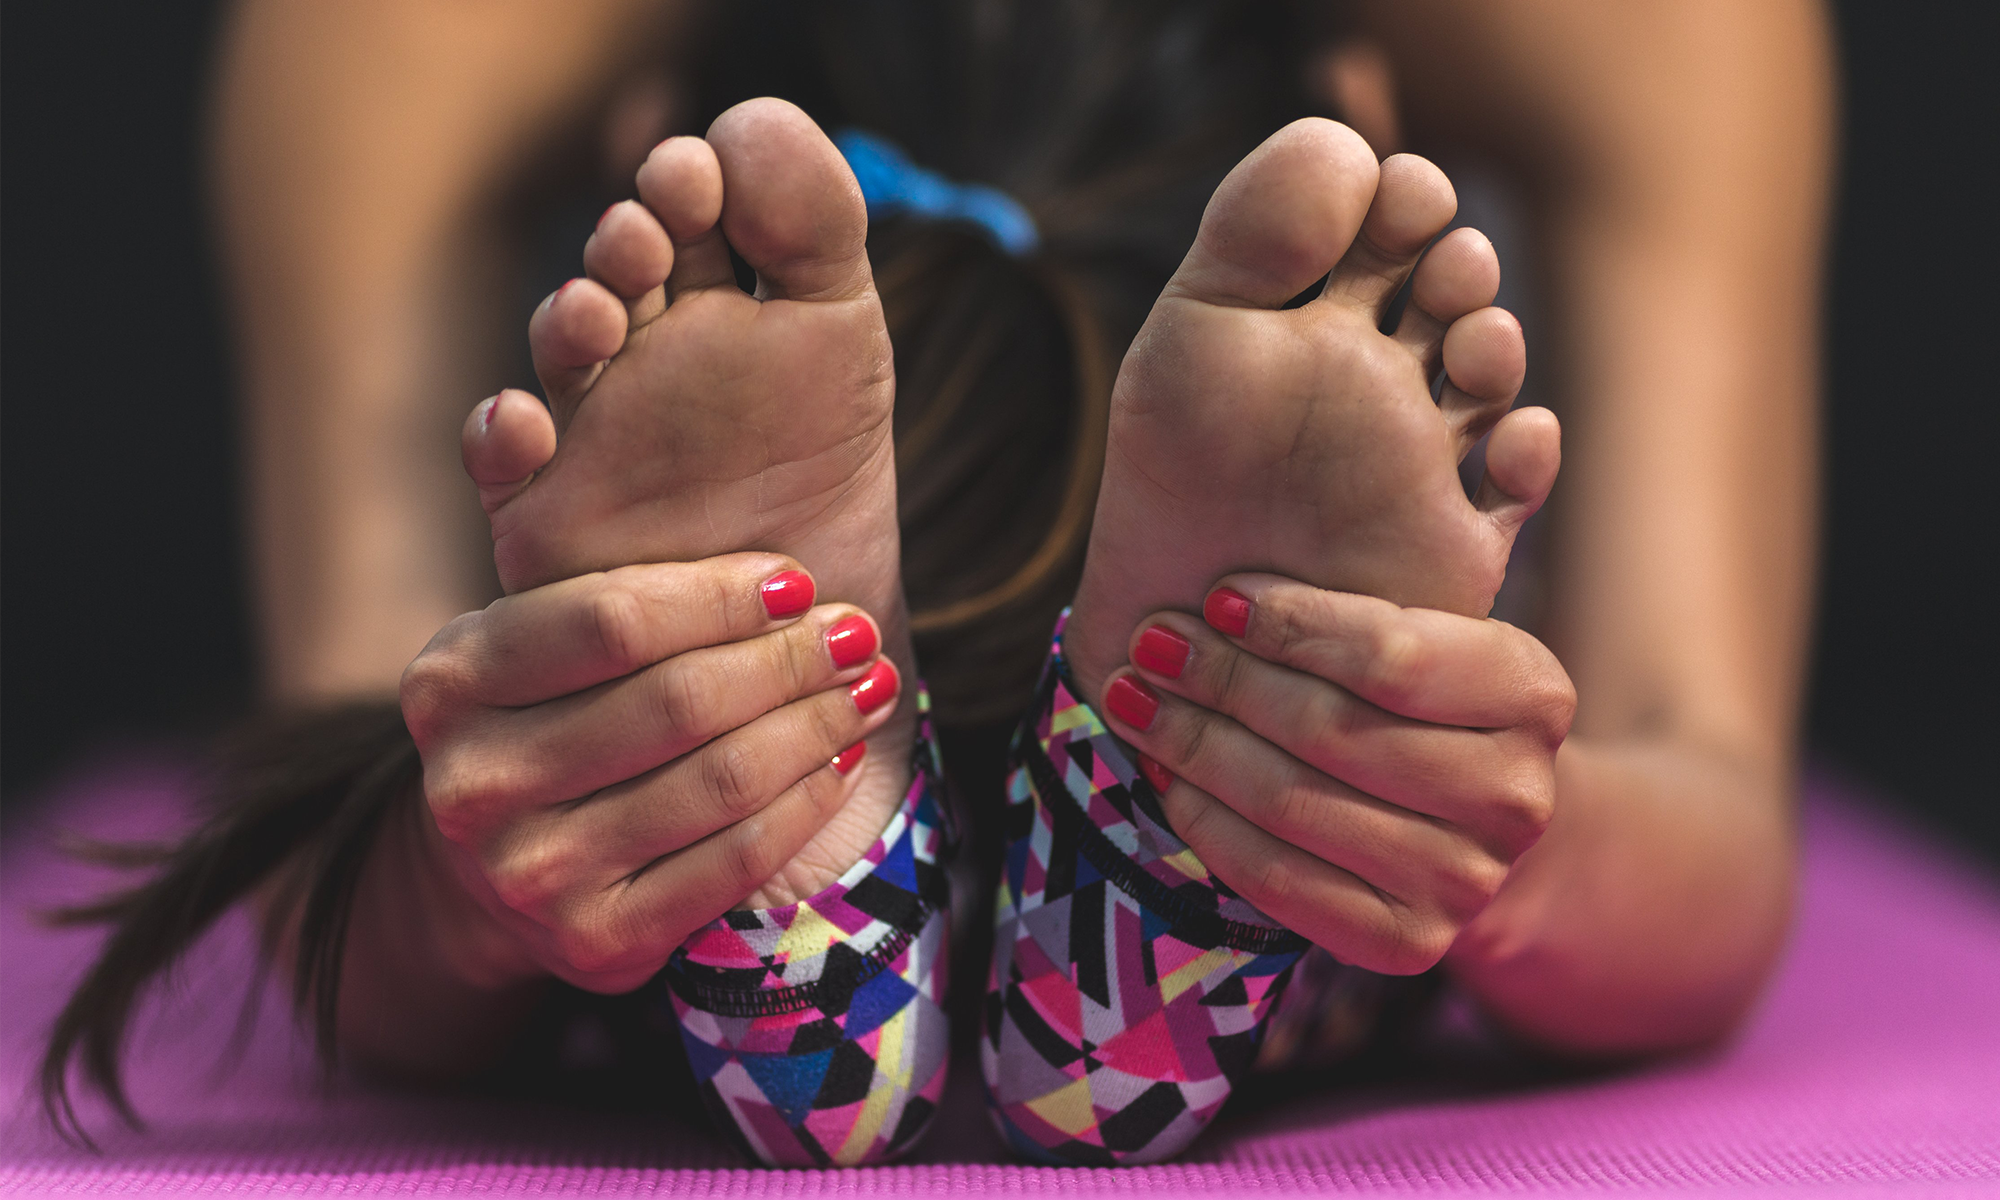 WW_wideimage (yoga feet).png